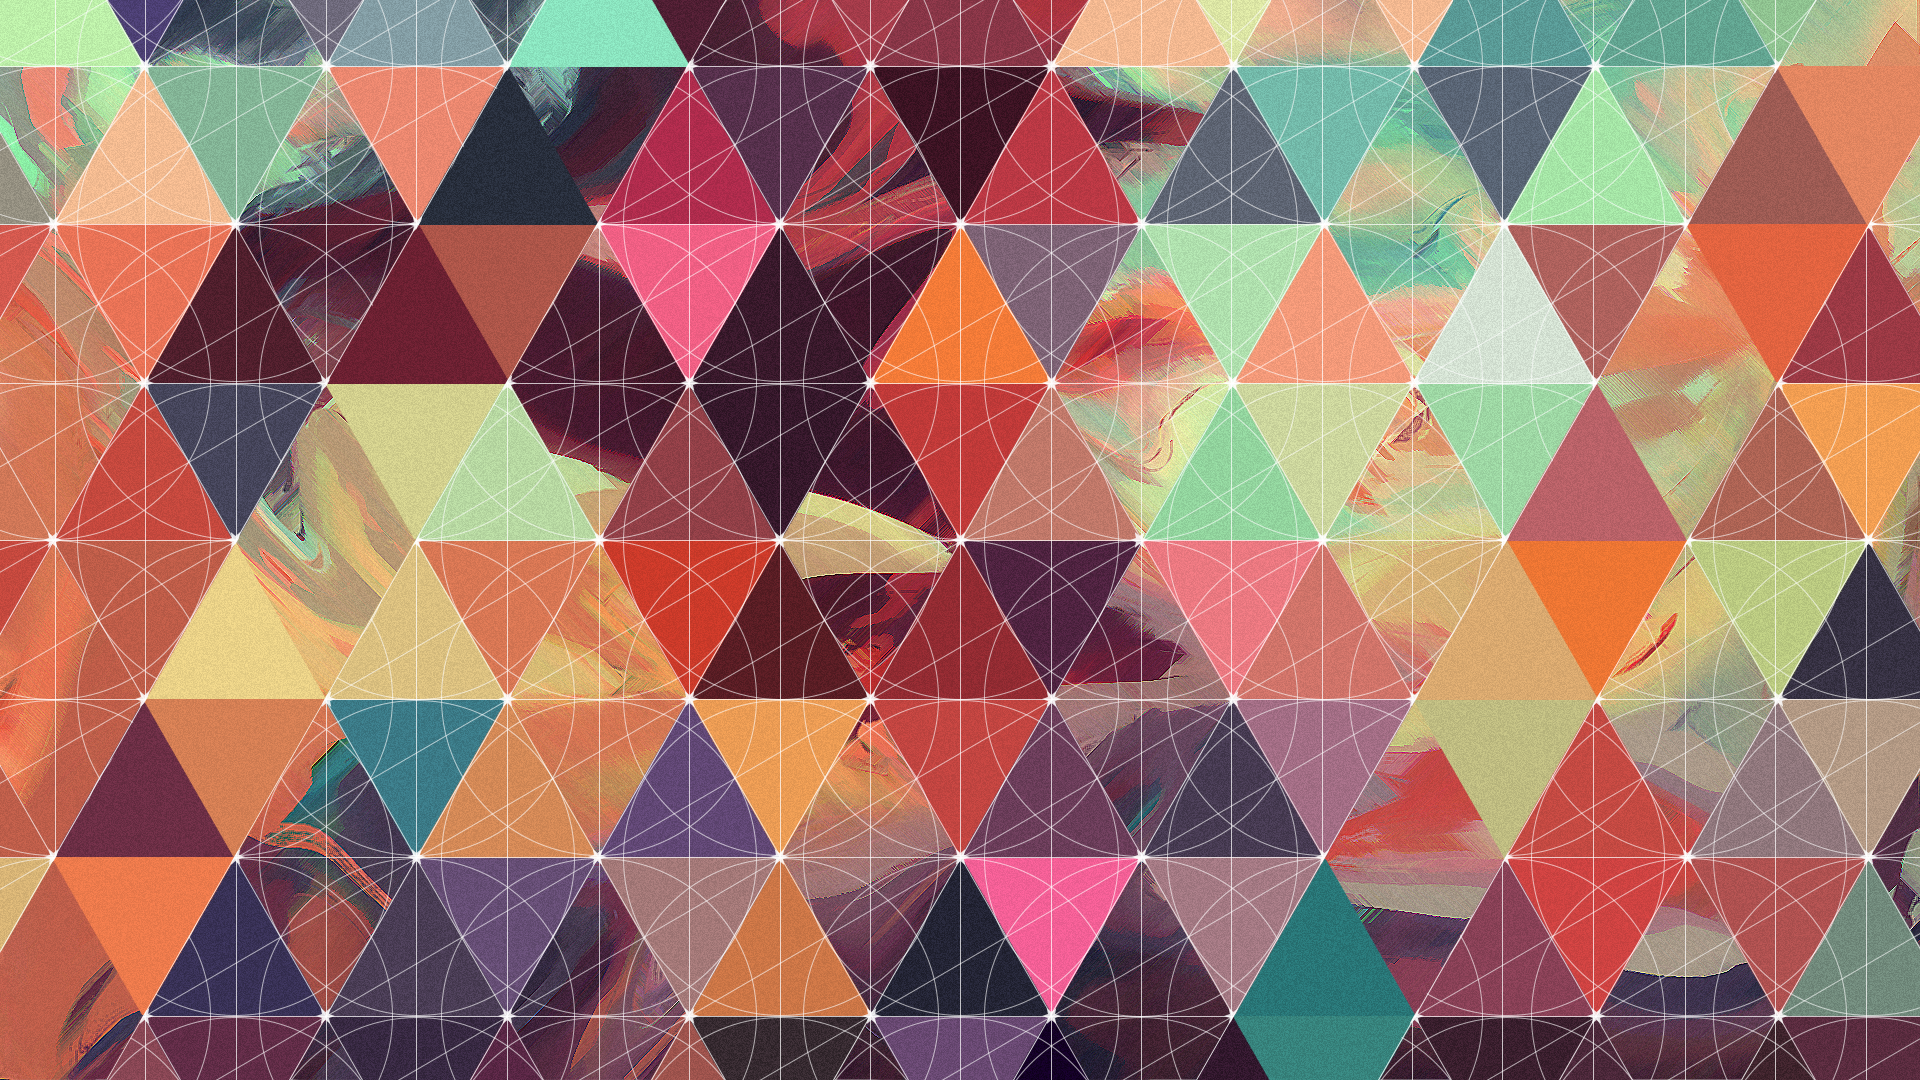 I made a geometric/abstract wallpaper today (1920x1080